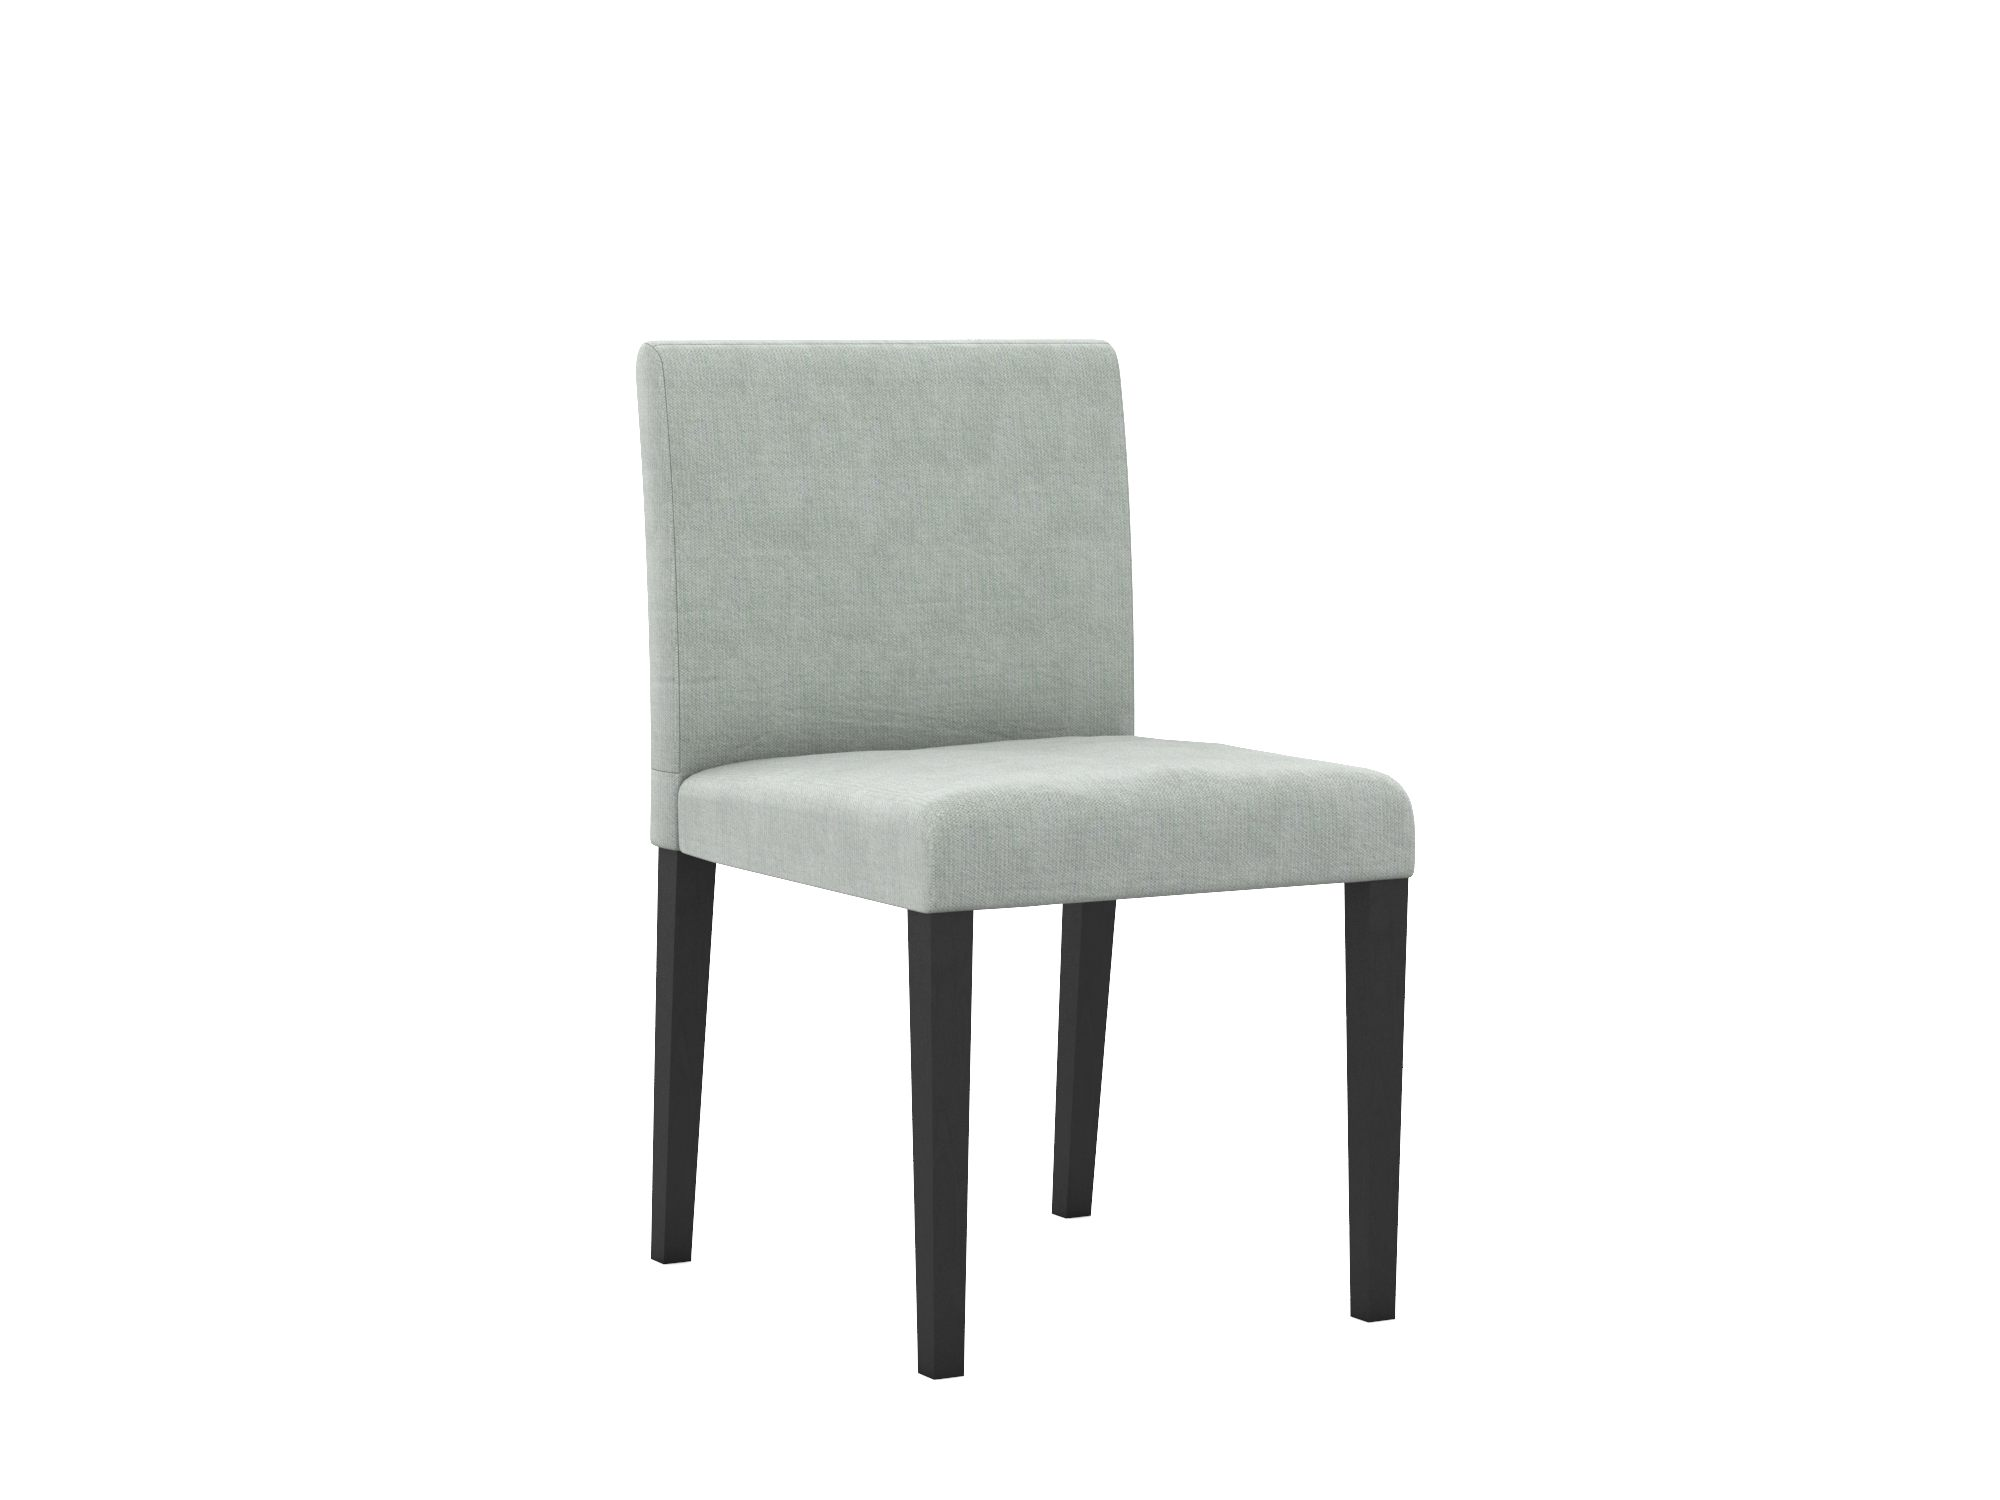 Nils chair cover without armrest (short)